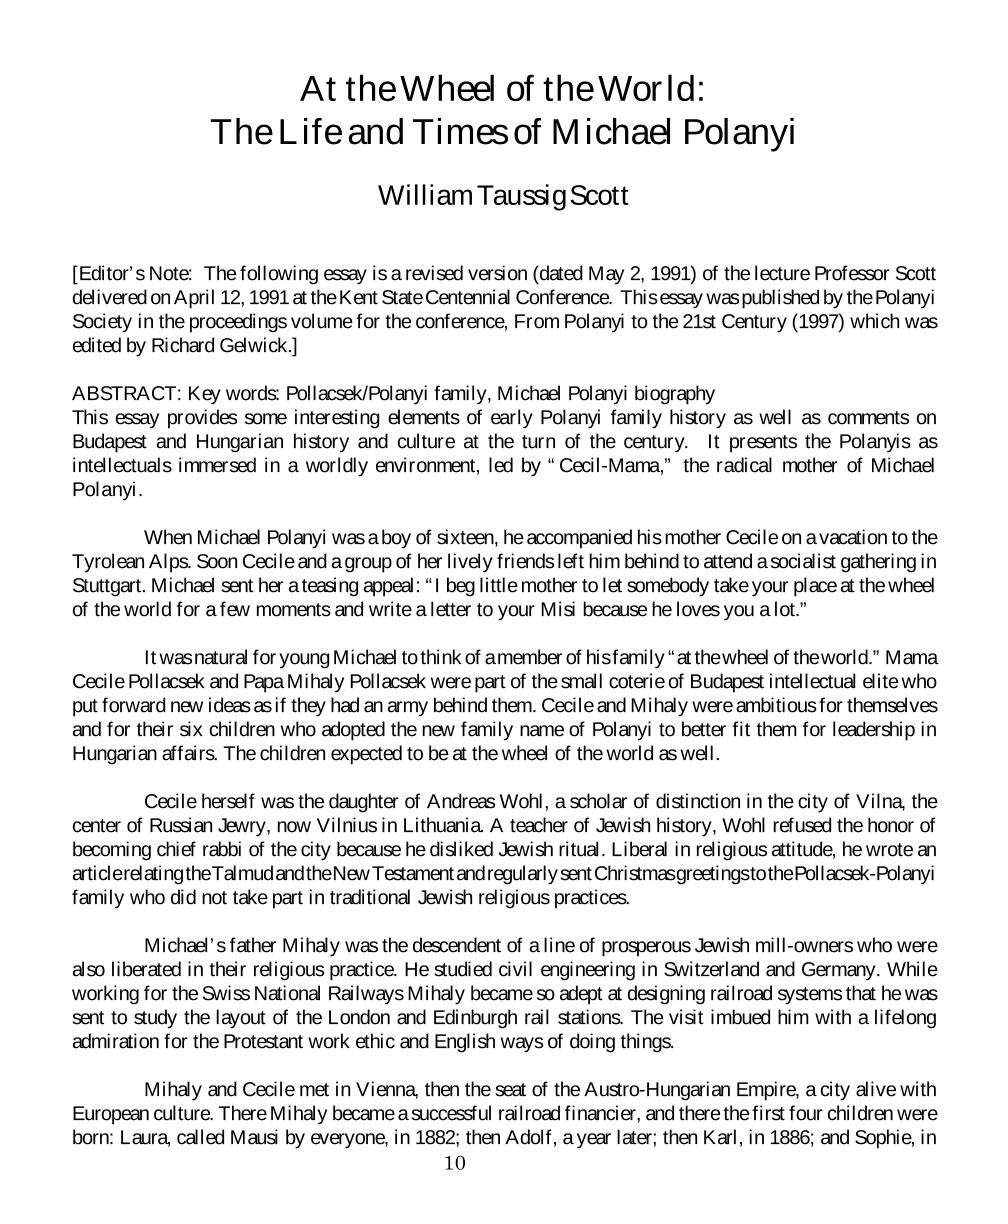 at the wheel of the world the life and times of michael polanyi document is being loaded